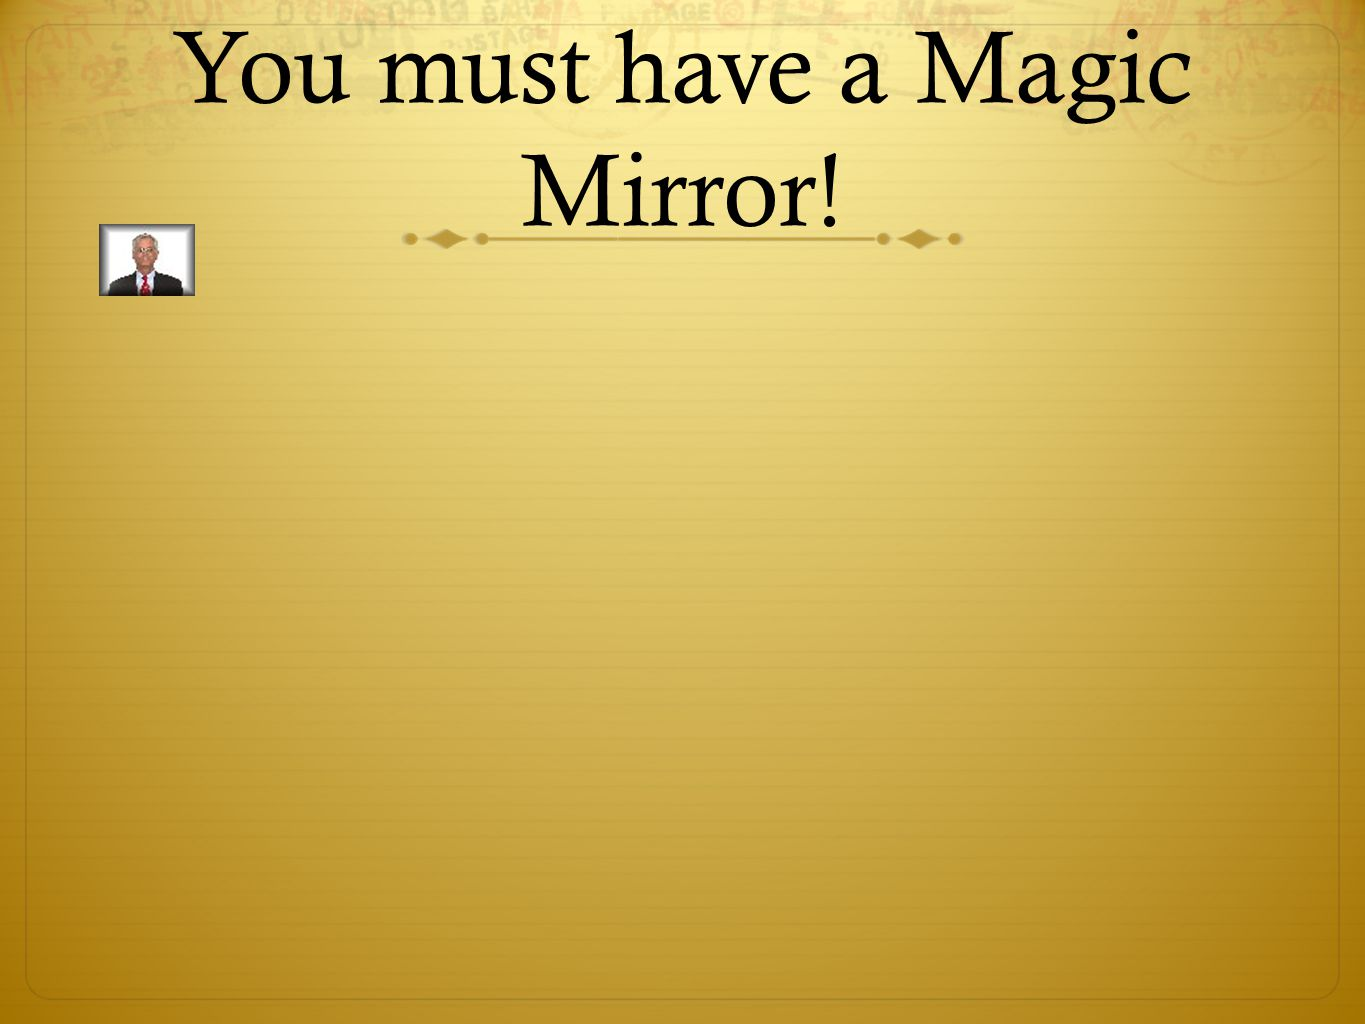 You must have a Magic Mirror!